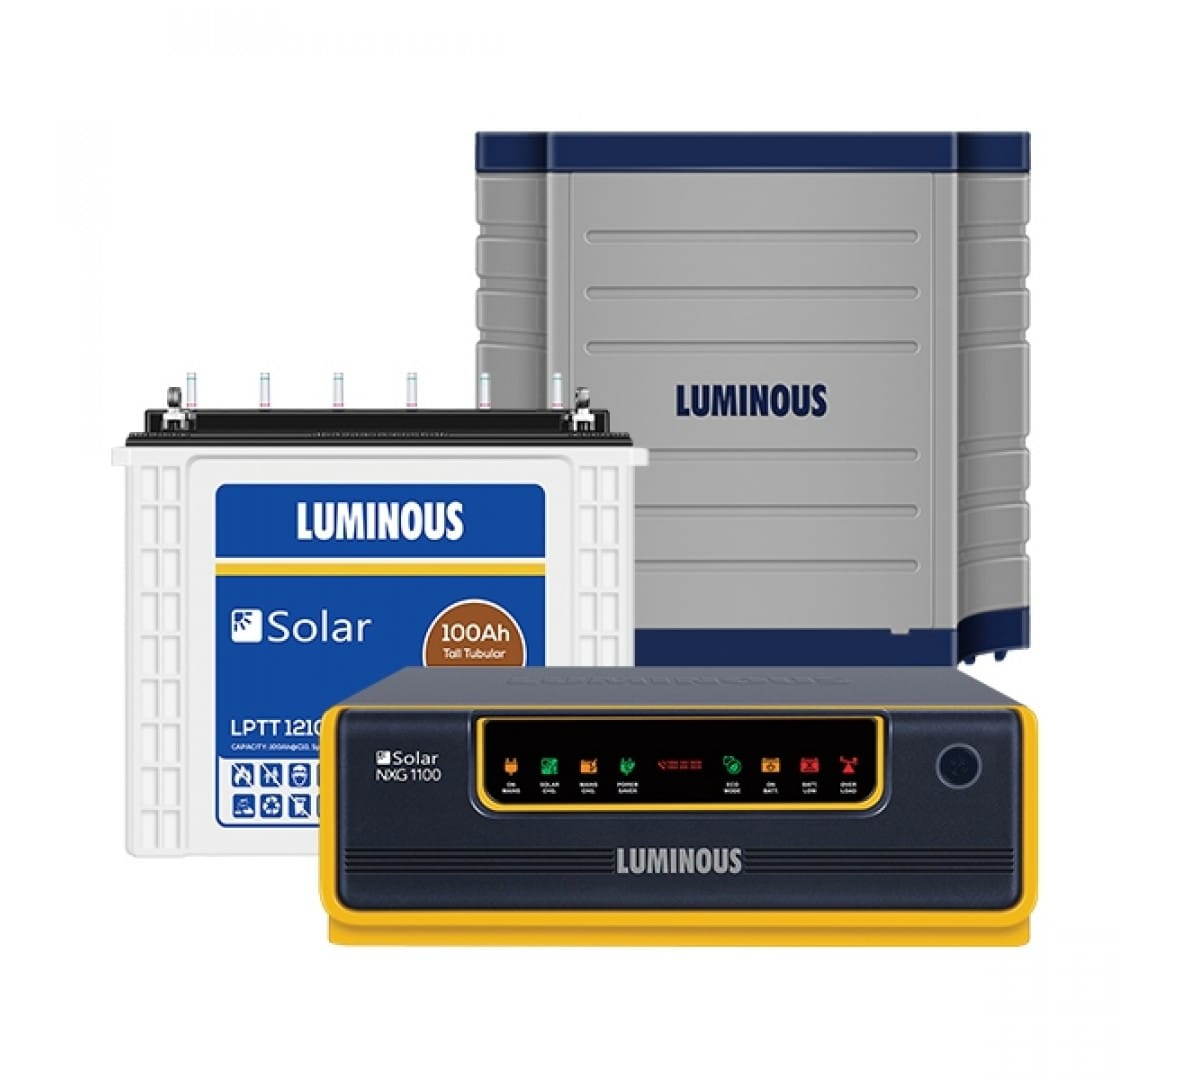 Luminous Solar Nxg1100 Ups + Lptt12100h 100Ah + Trolley